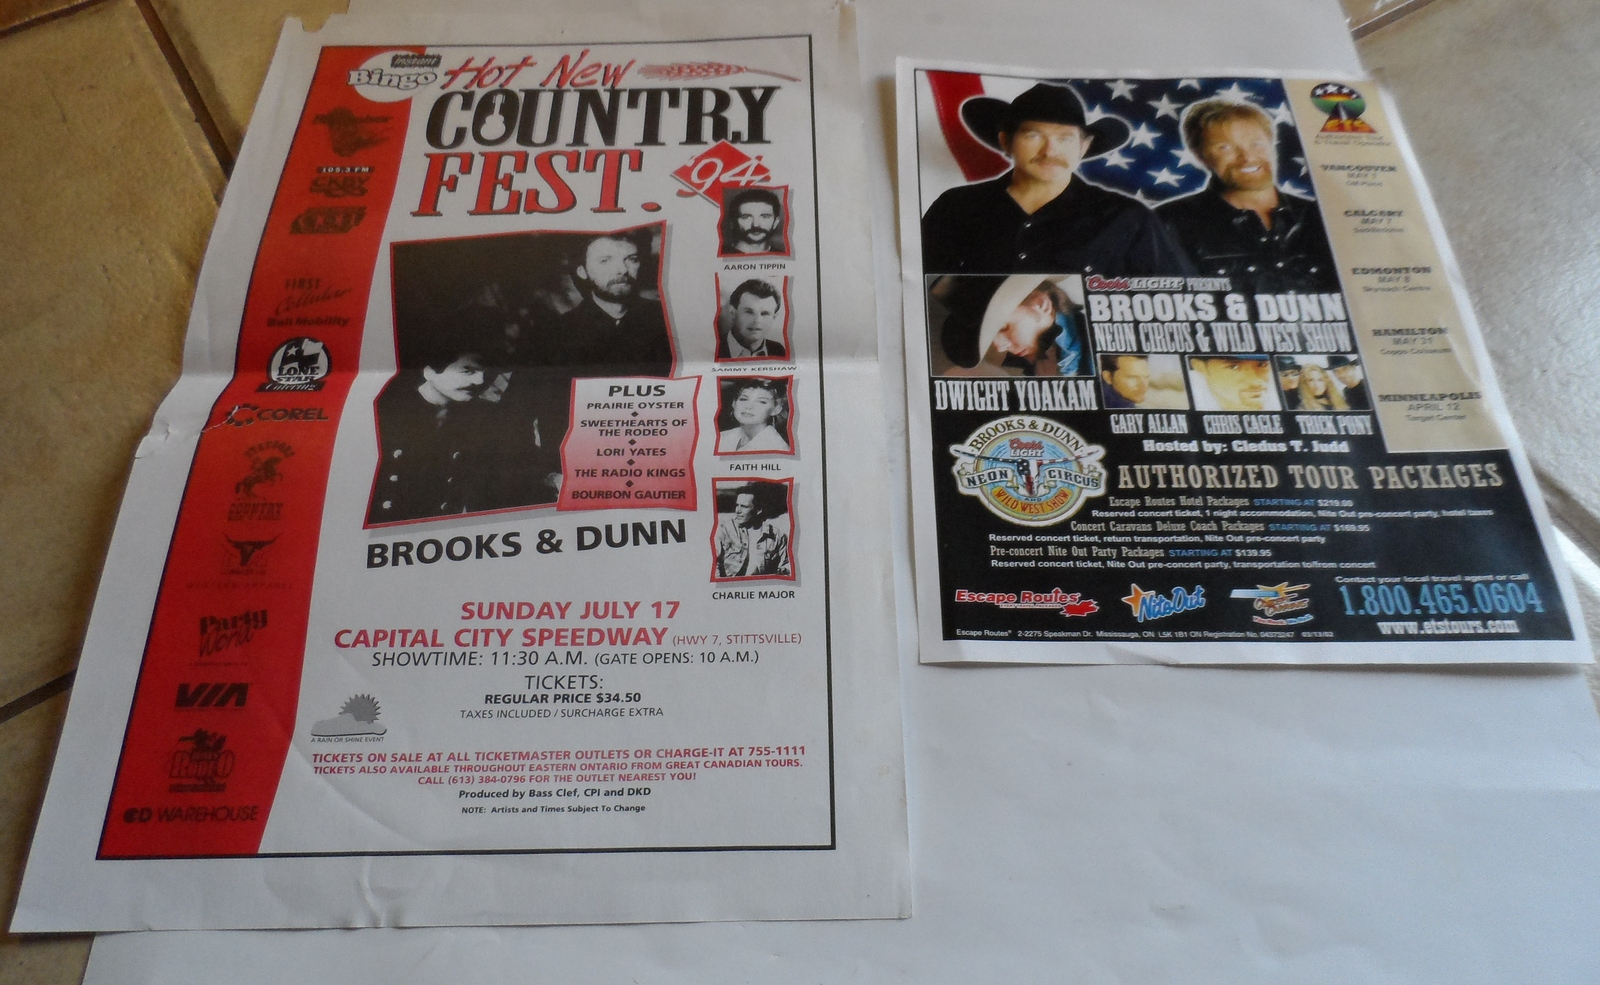 Primary image for BROOKS & DUNN 2 VINTAGE FLYERS NEON CIRCUS & WILD WEST TOUR COUNTRY FEST COUNTRY